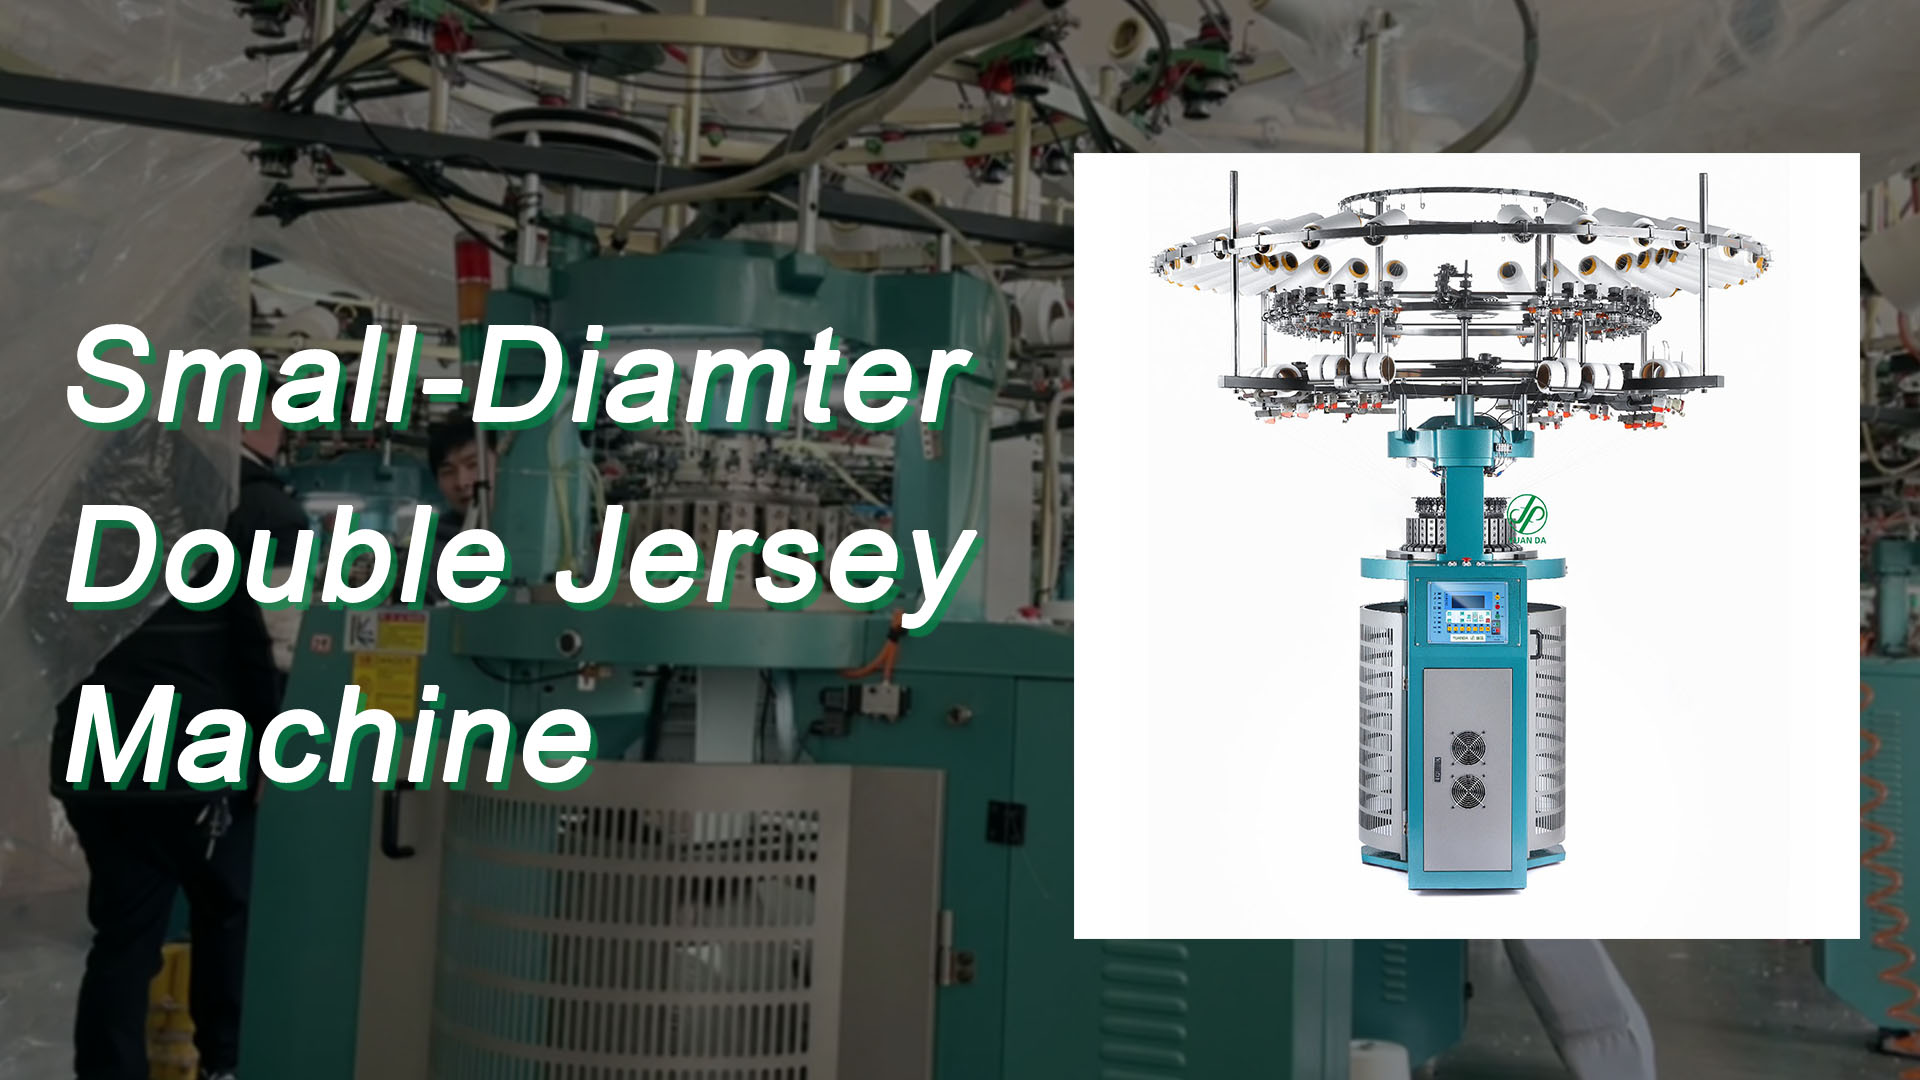 Small-Diamter Double Jersey Machine